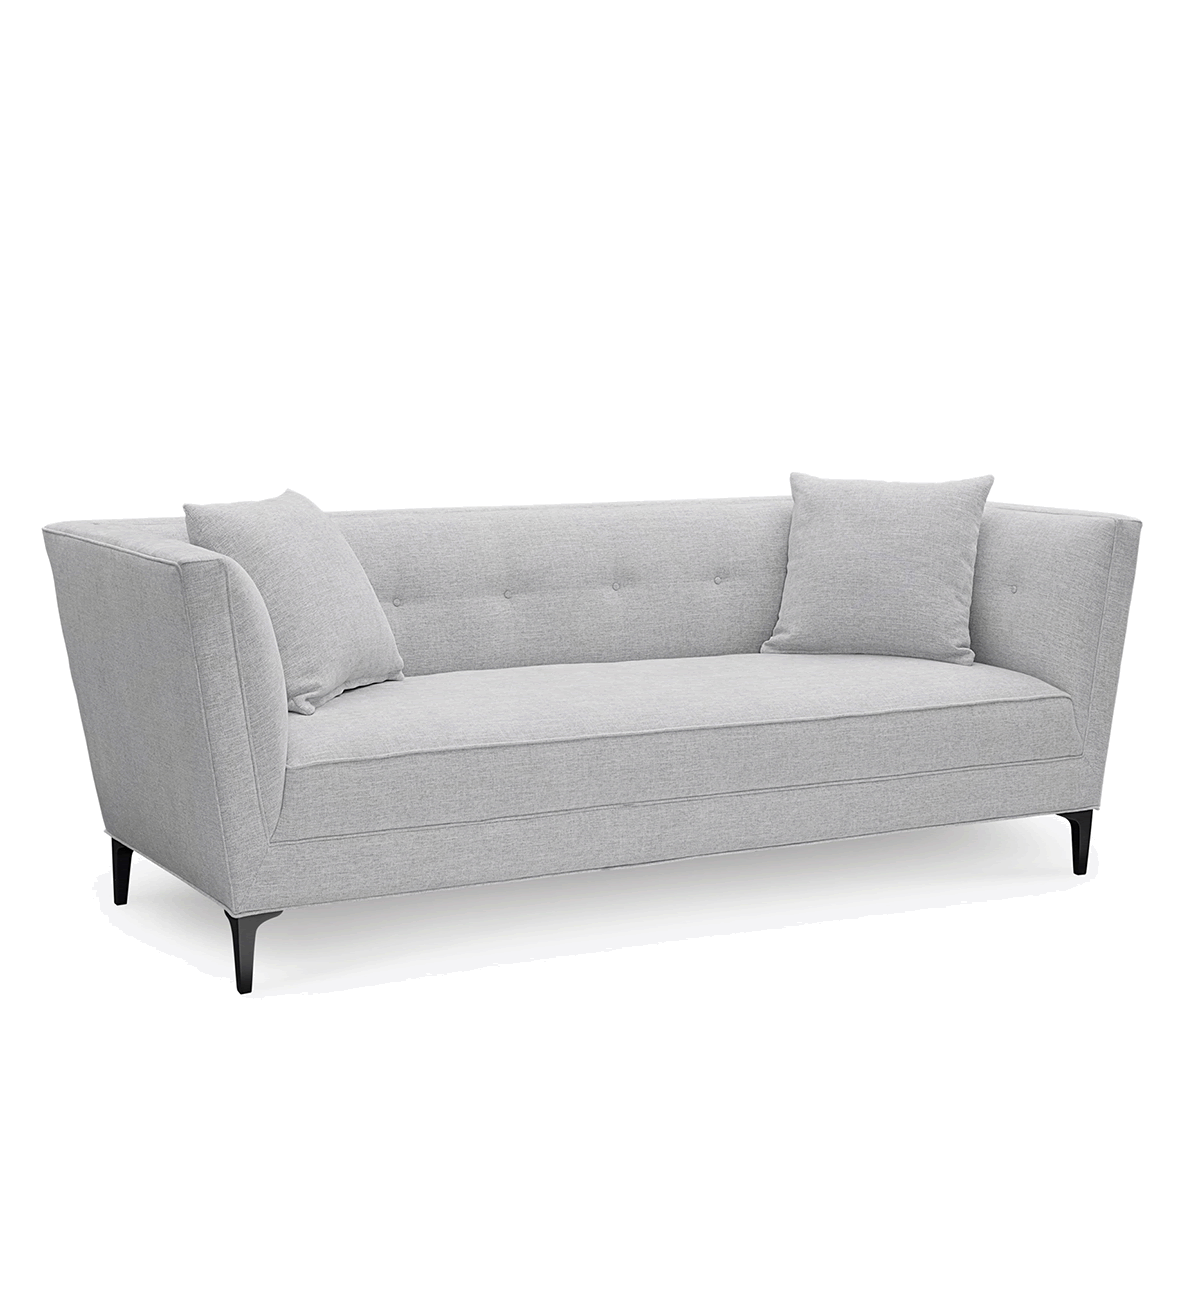 loveseat or sofa difference bauhaus mineral tan microfiber between couch and brokeasshome